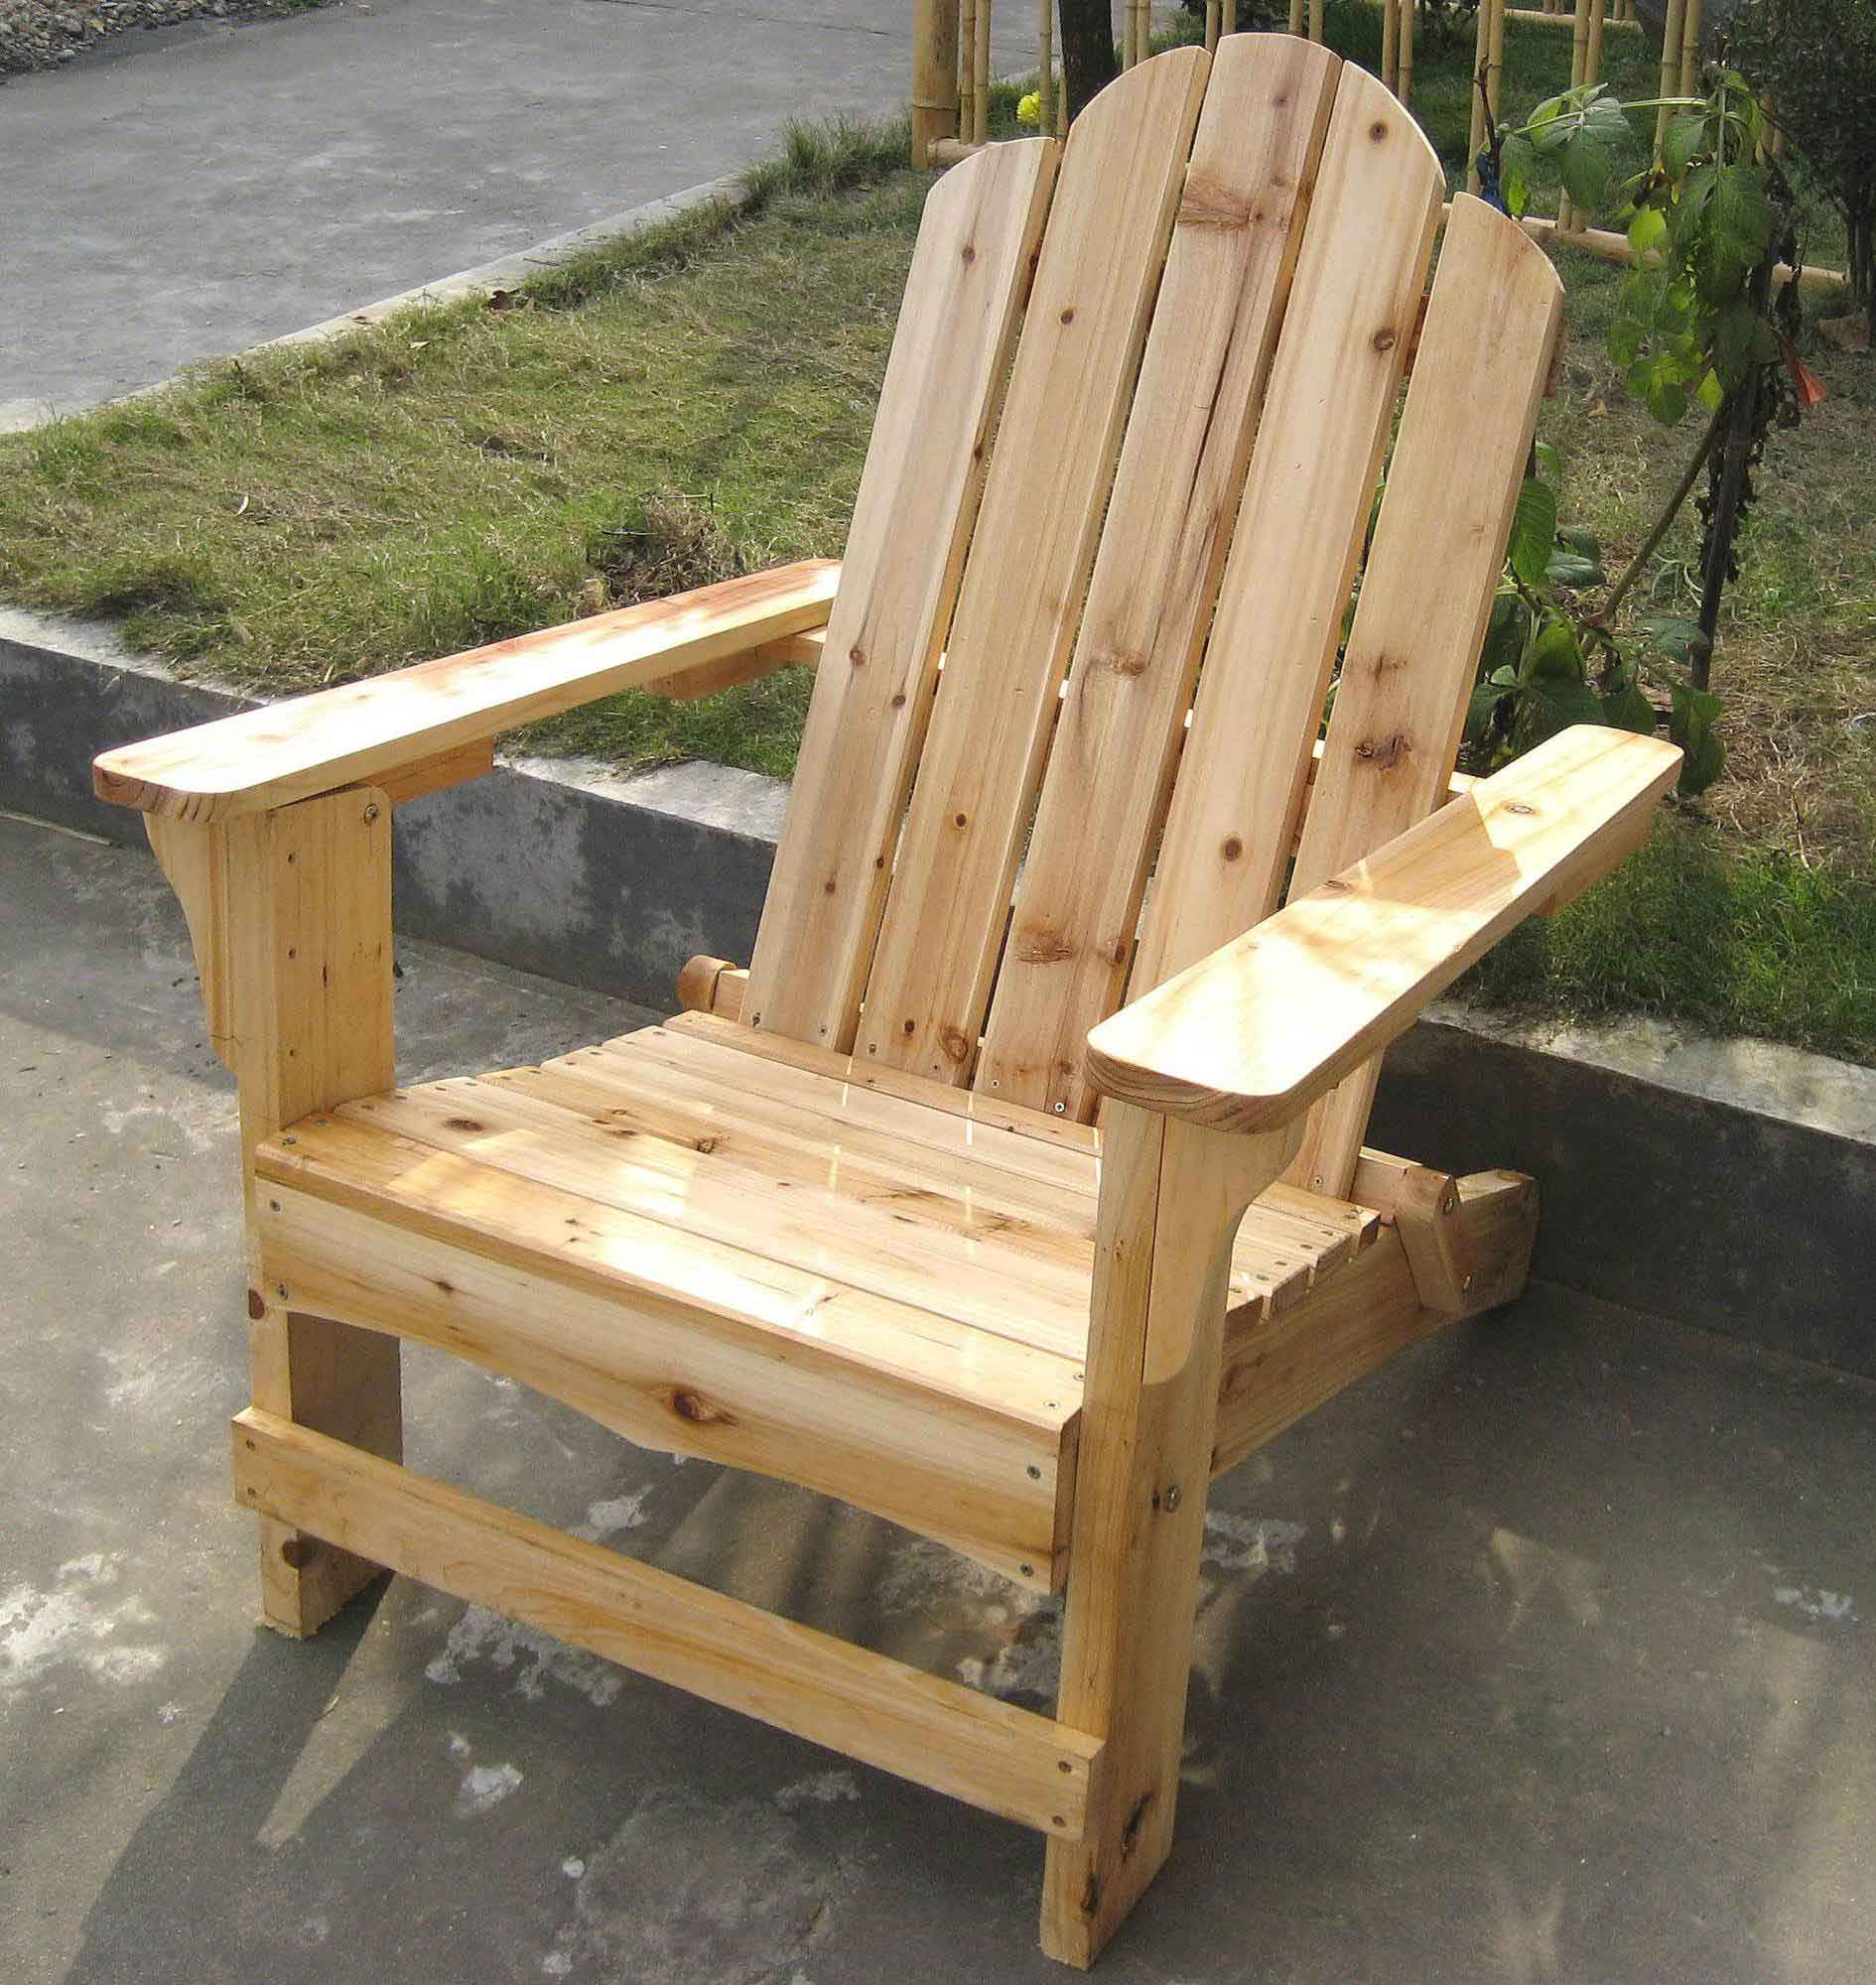 Wooden furniture more for Bancas para jardin de madera